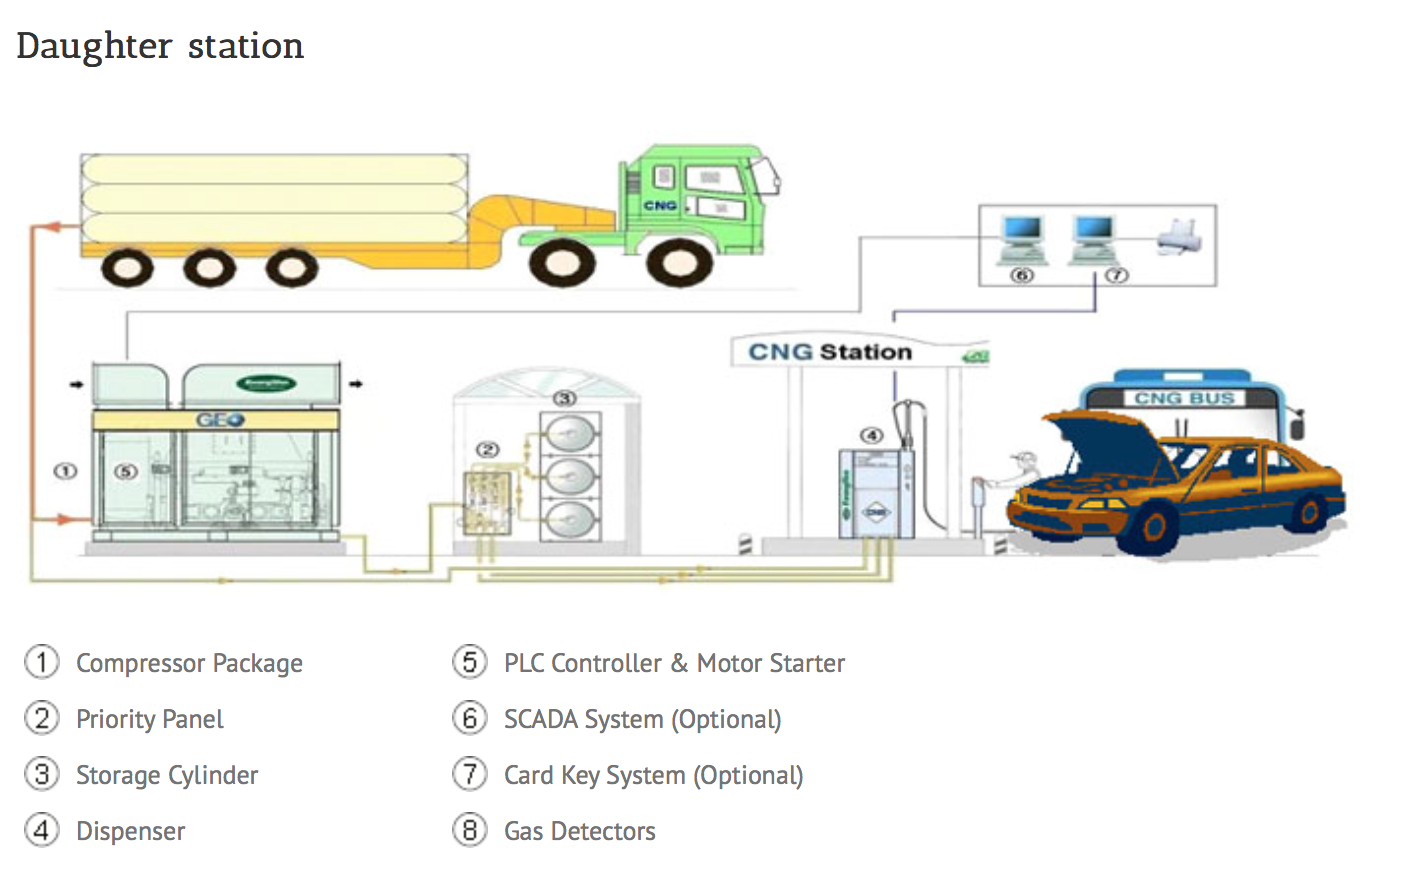 Diagram of a CNG daughter station.